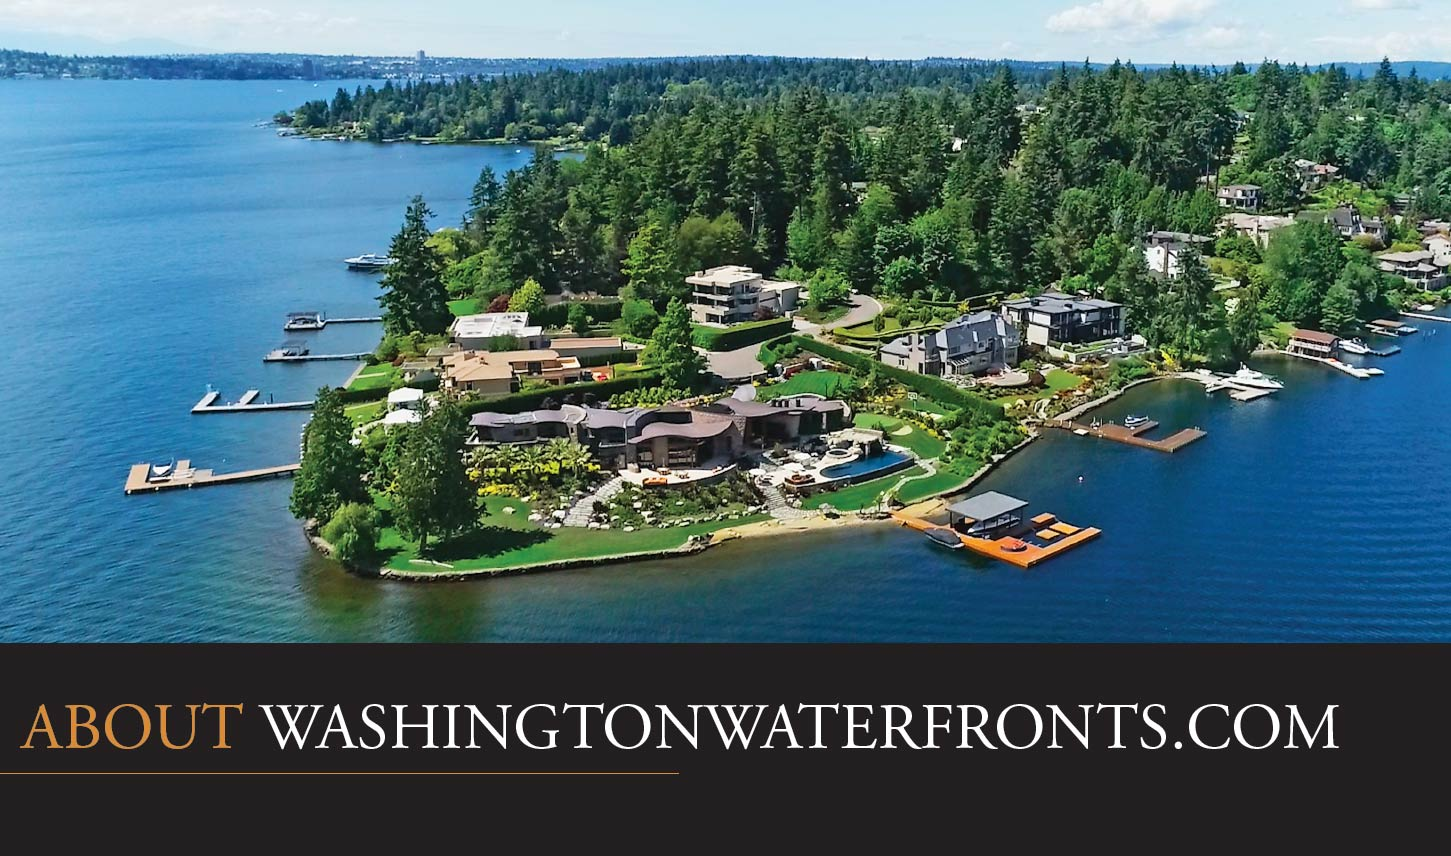 About Washington Waterfronts